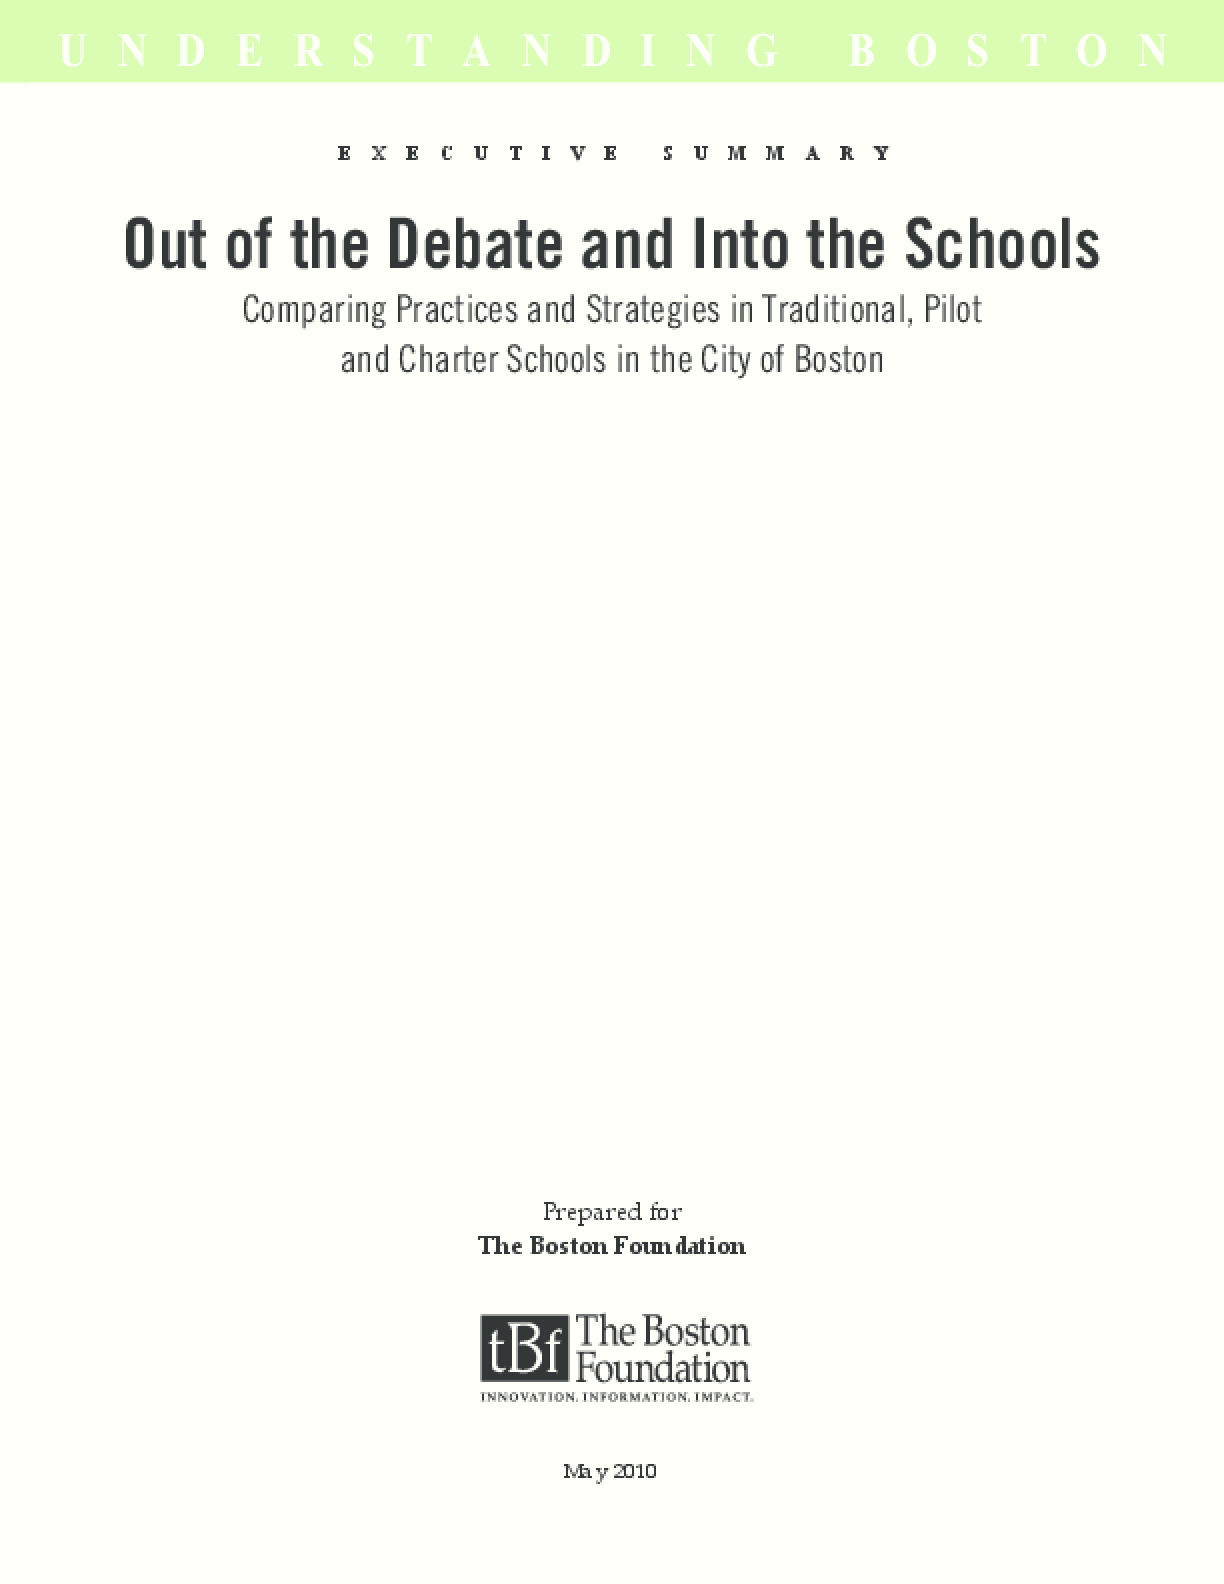 Out of the Debate and Into the Schools